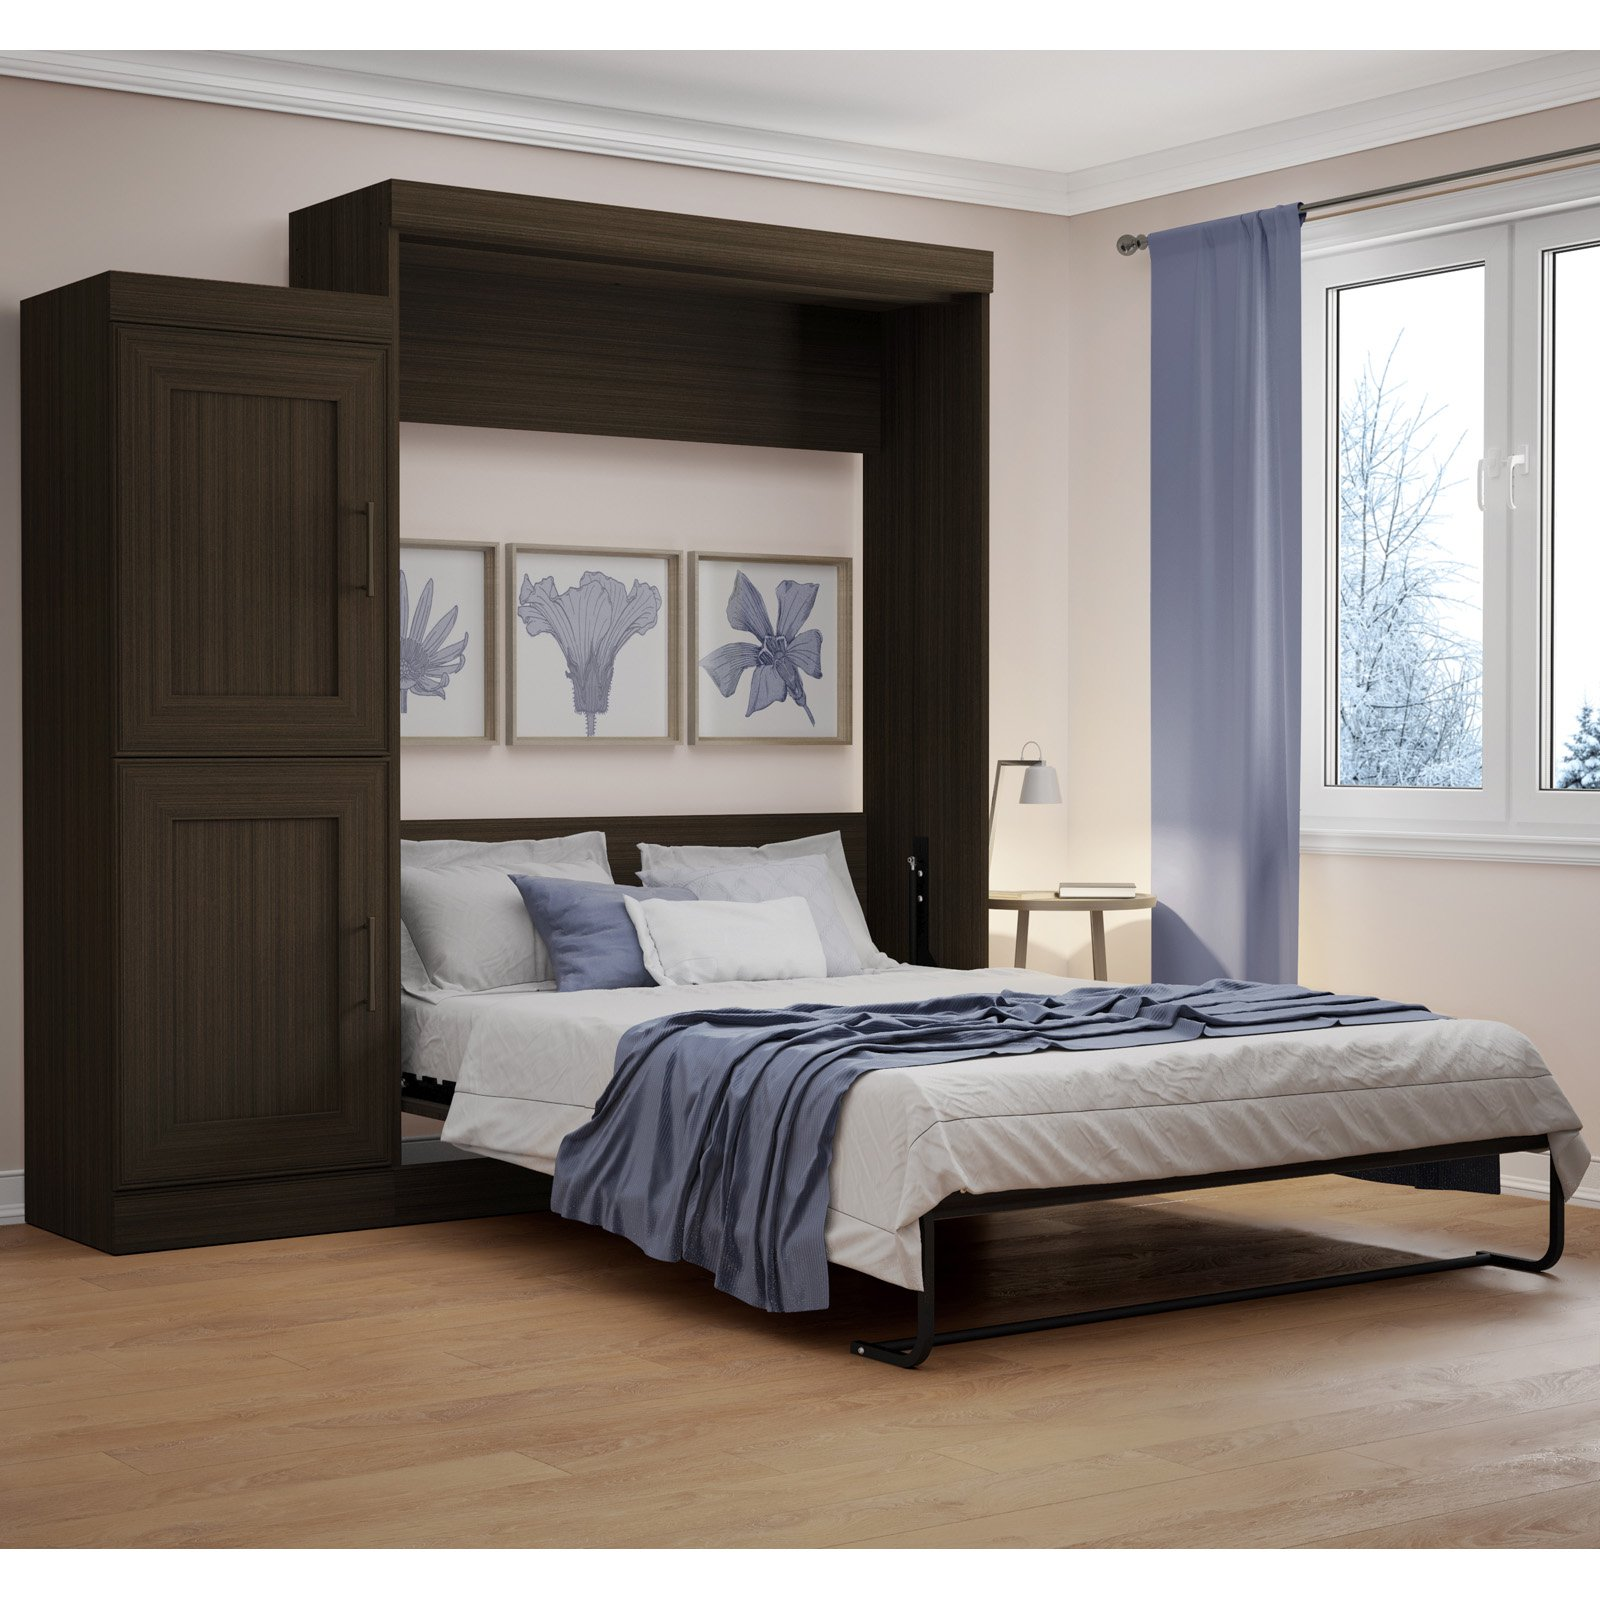 Bestar Edge Murphy Bed with 2 Door Storage Unit - Queen